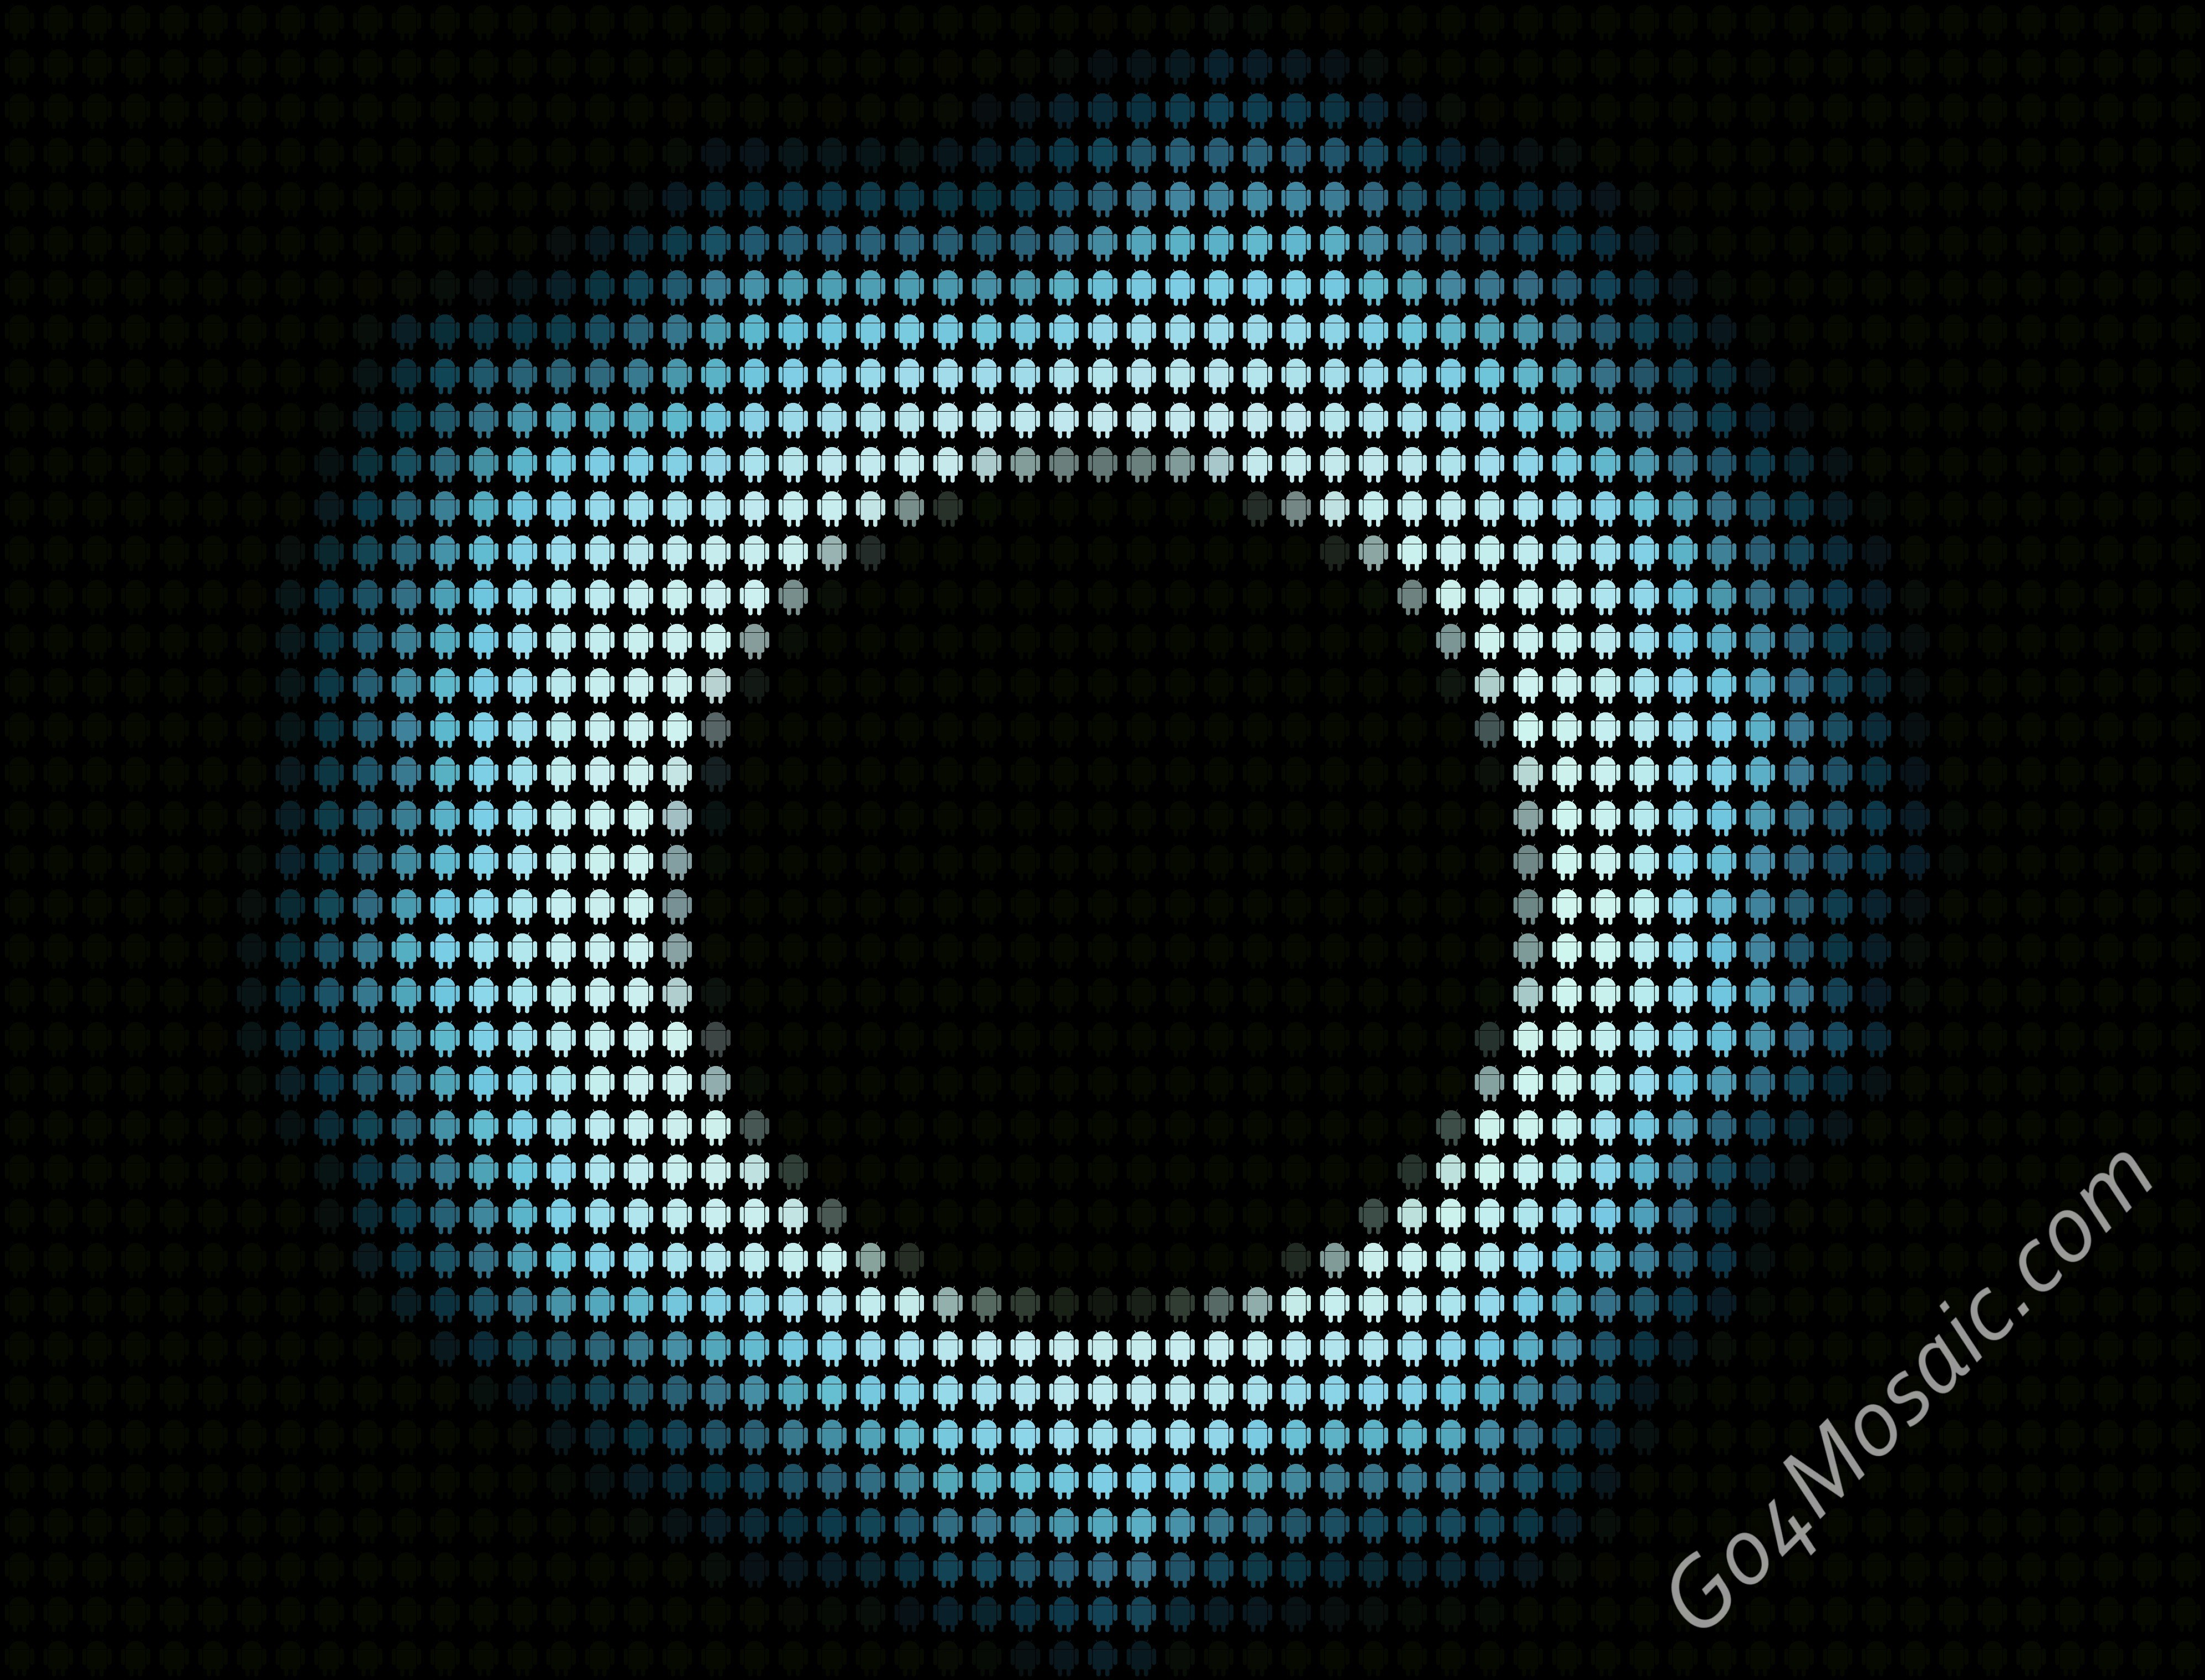 Solar Eclipse mosaic from Androids